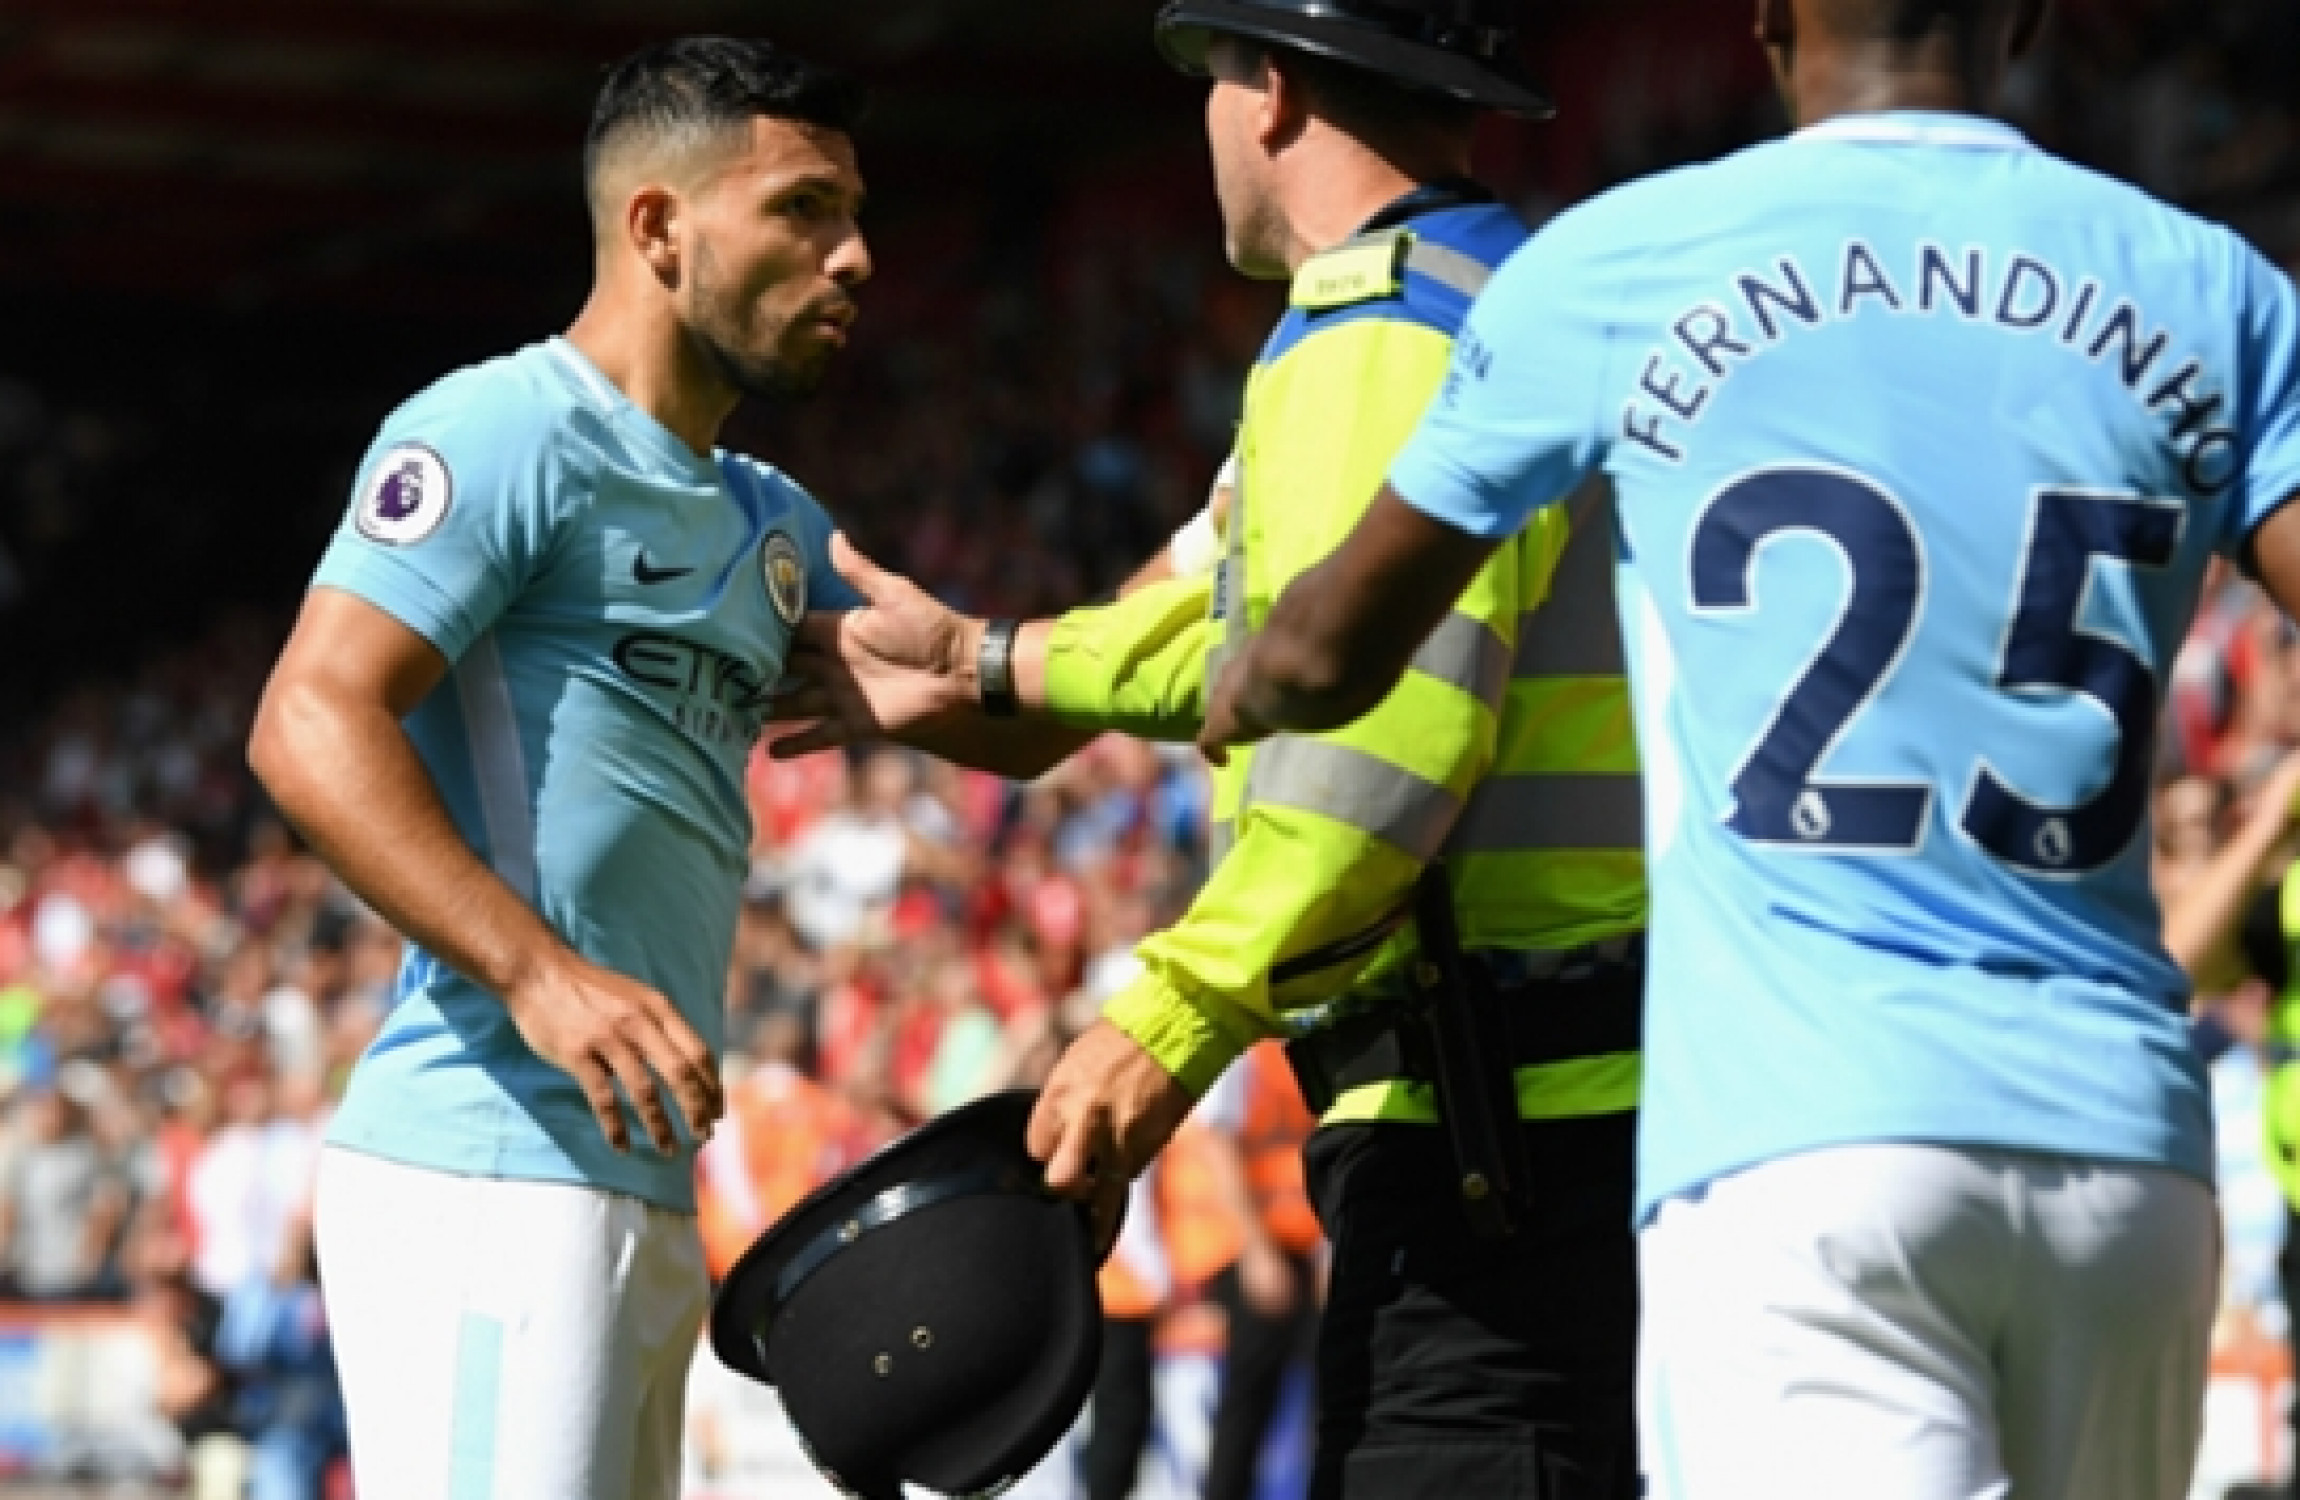 City snatch dramatic win but Sterling dismissal baffles Guardiola